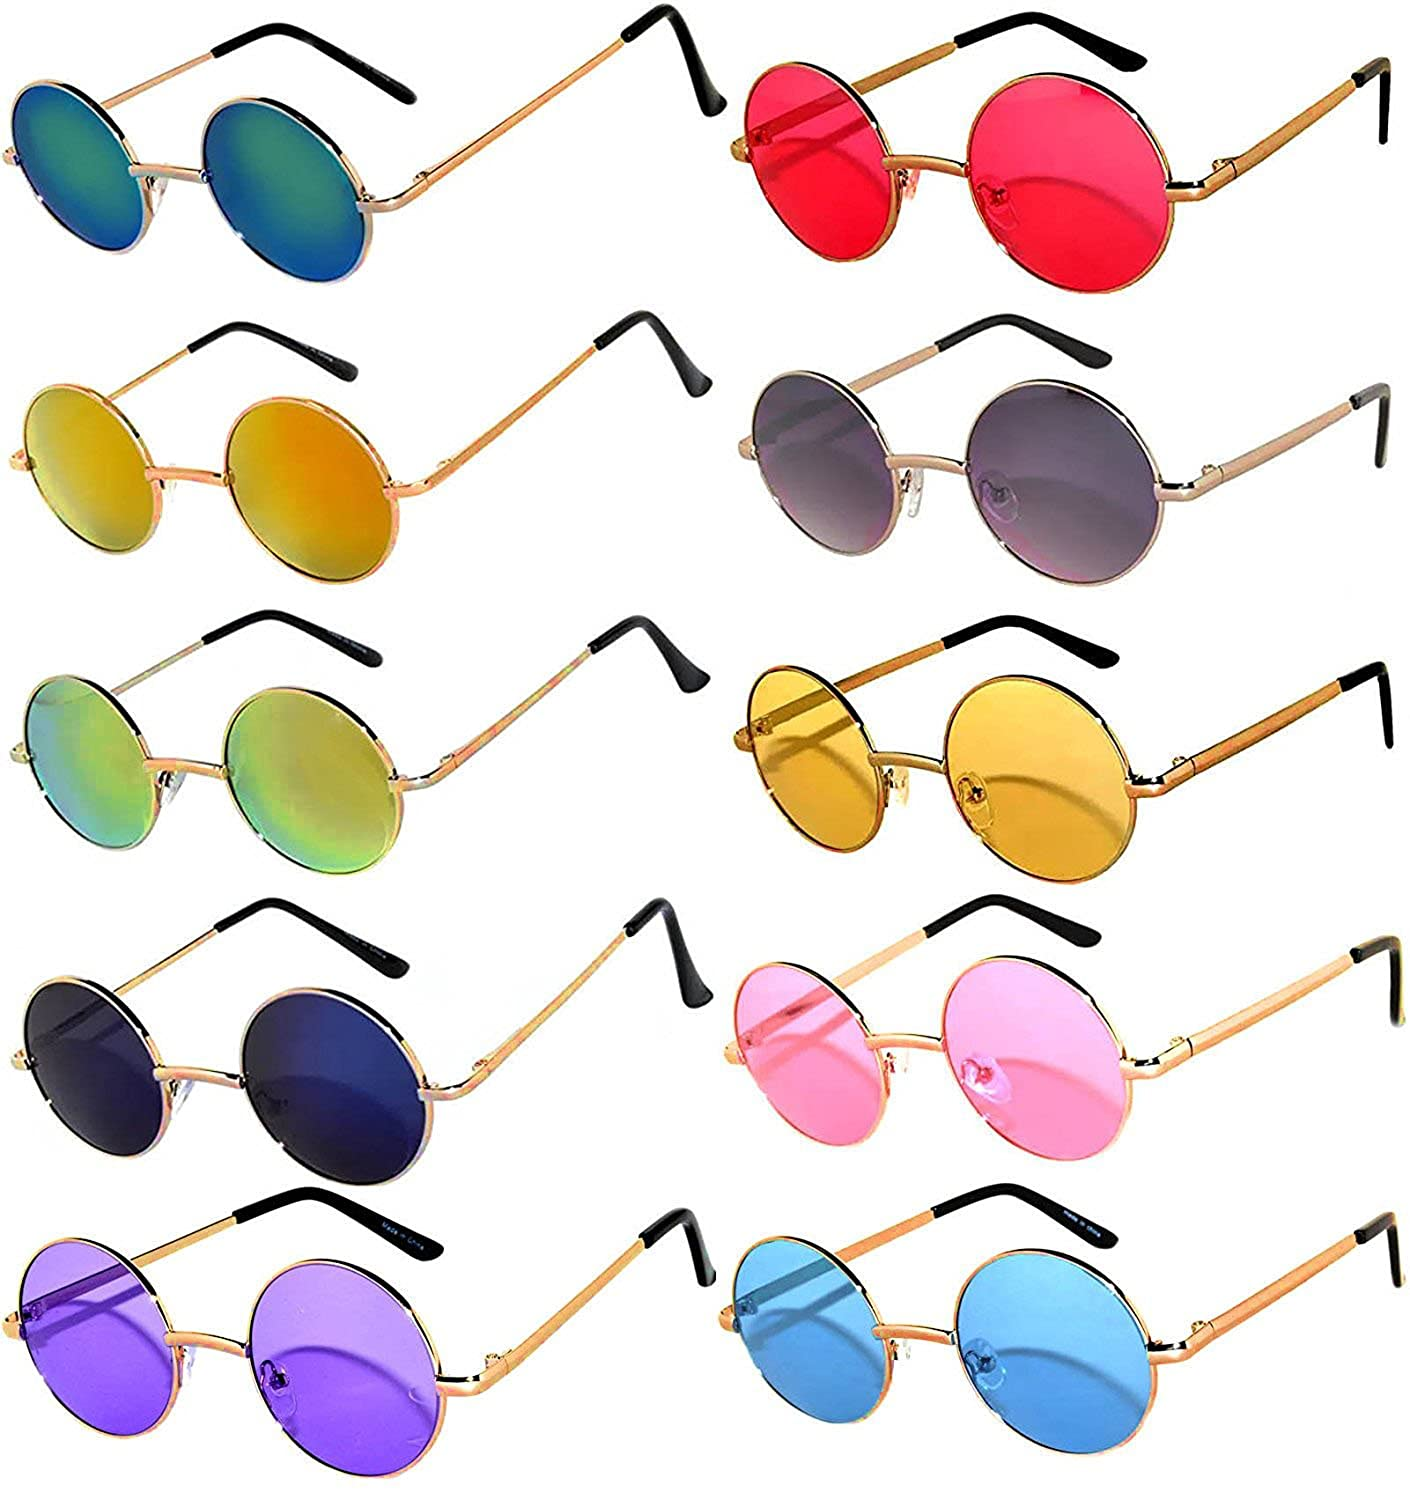 Image result for colored sunglasses